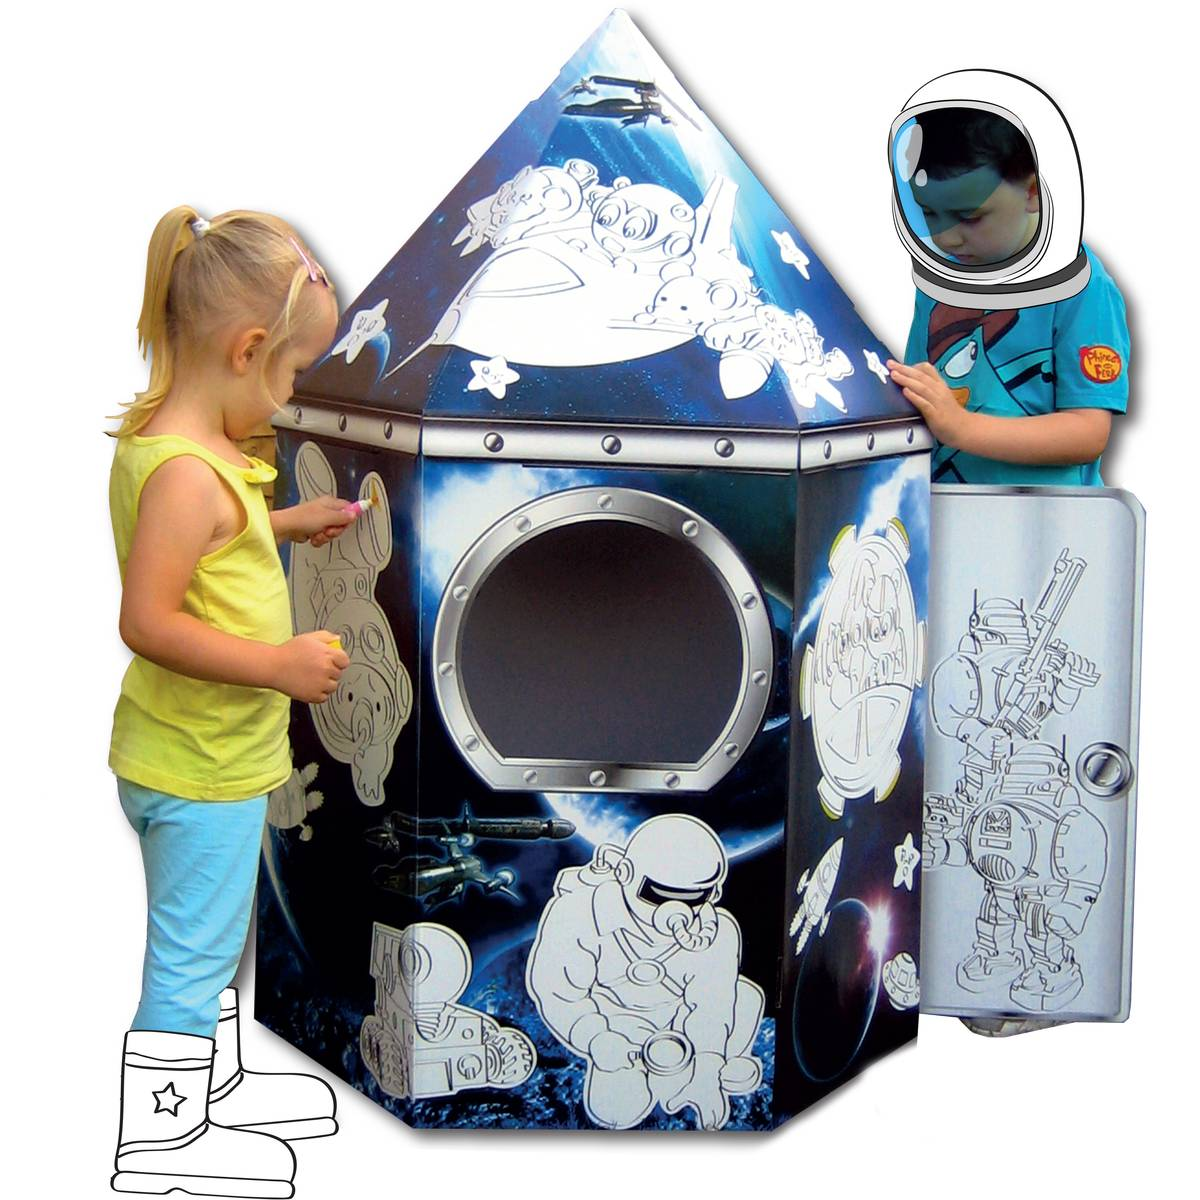 - Colour In Cardboard Rocket Playhouse, Hobbycraft £17